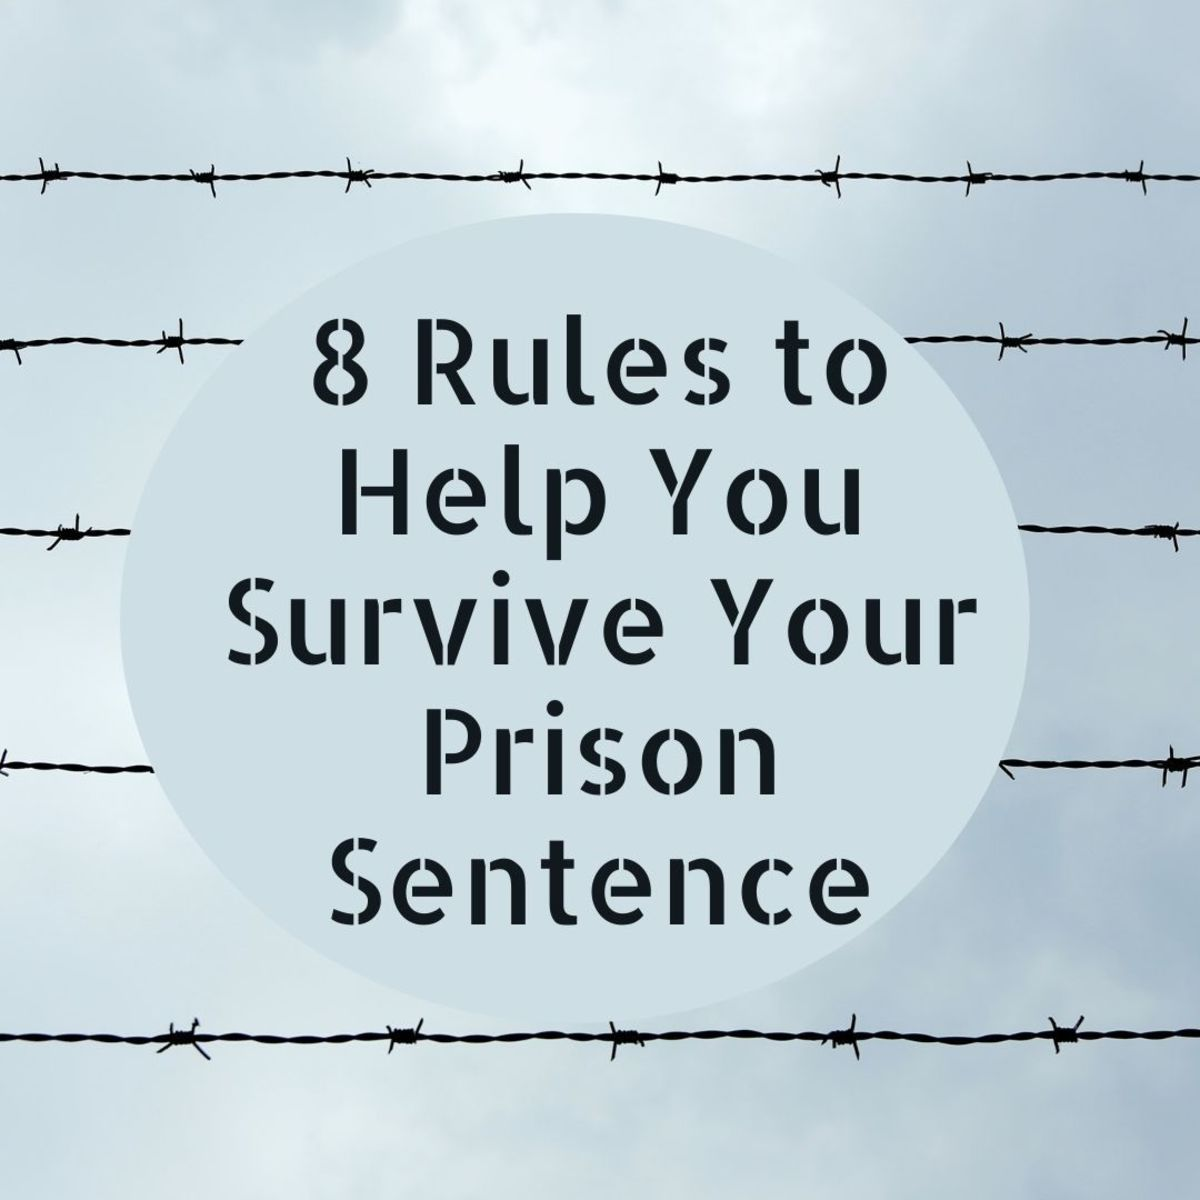 These rules will help you survive your time in prison.